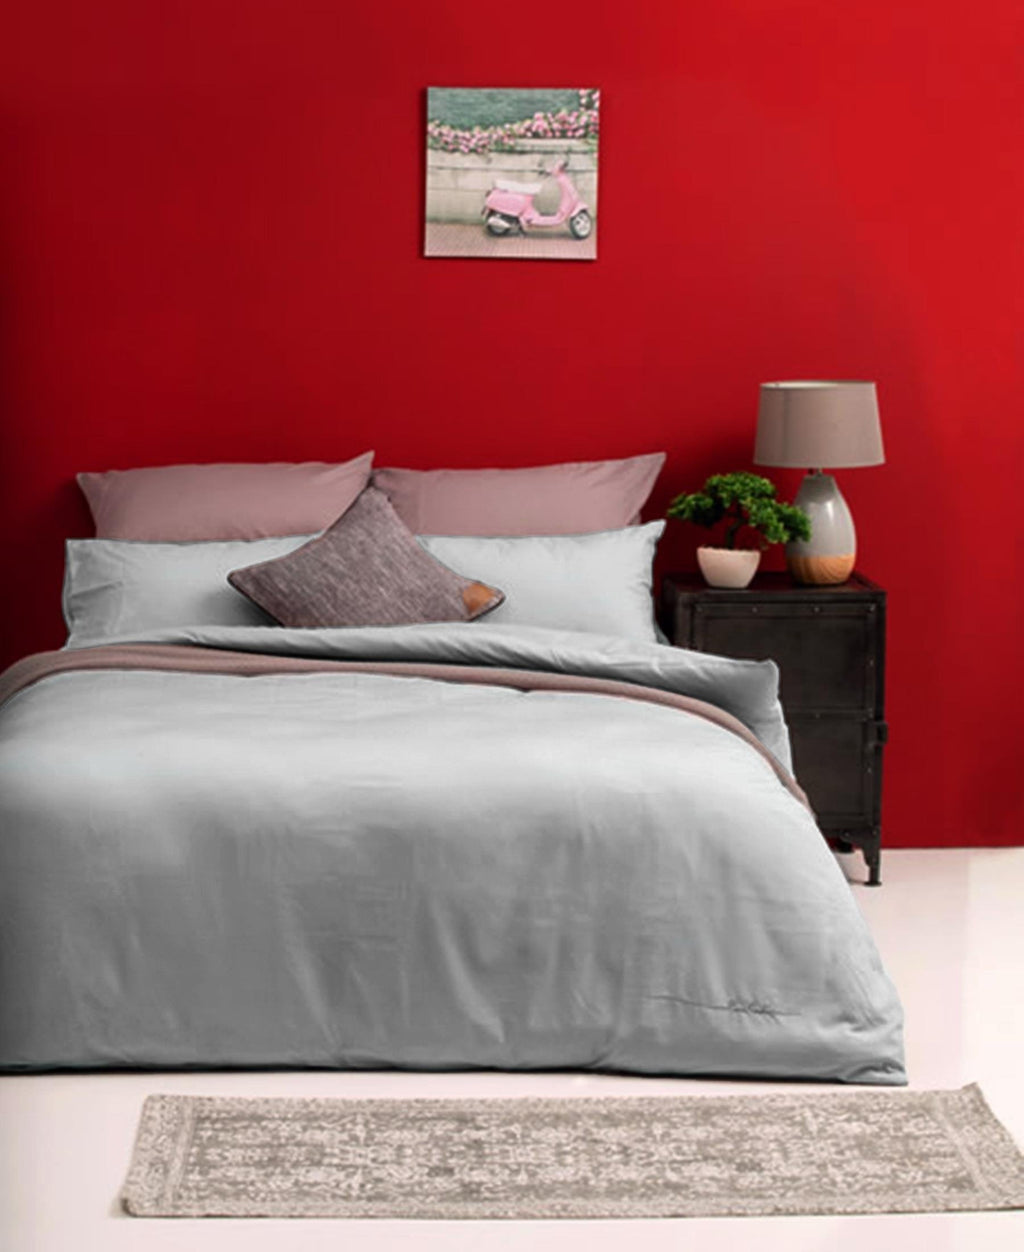 Pierre Cardin 180 Thread Count Lifestyle Duvet Cover - Liaden